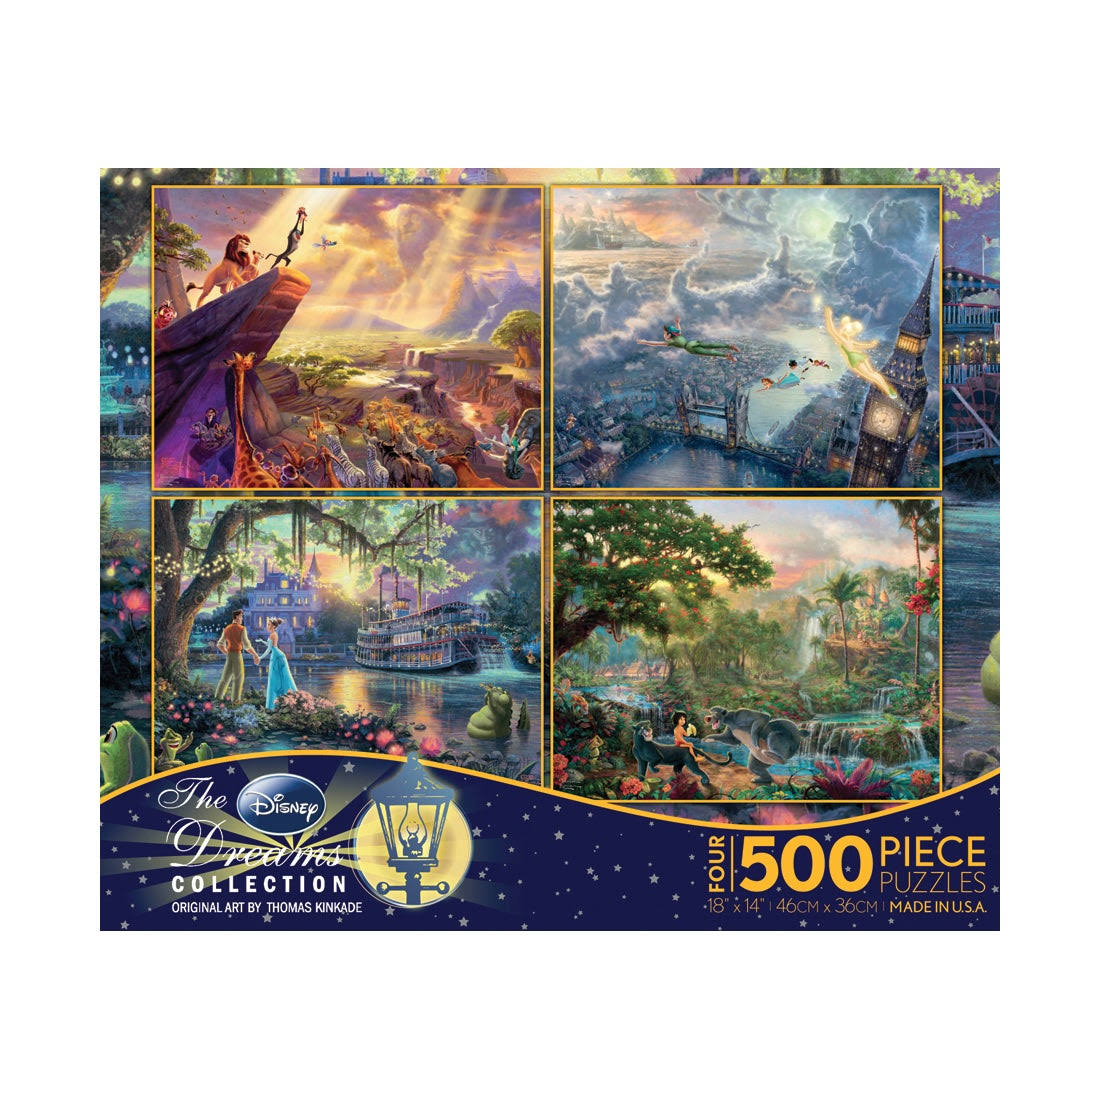 Ceaco Disney The Dream Collection Puzzle - 500 Pieces, 4 Puzzles